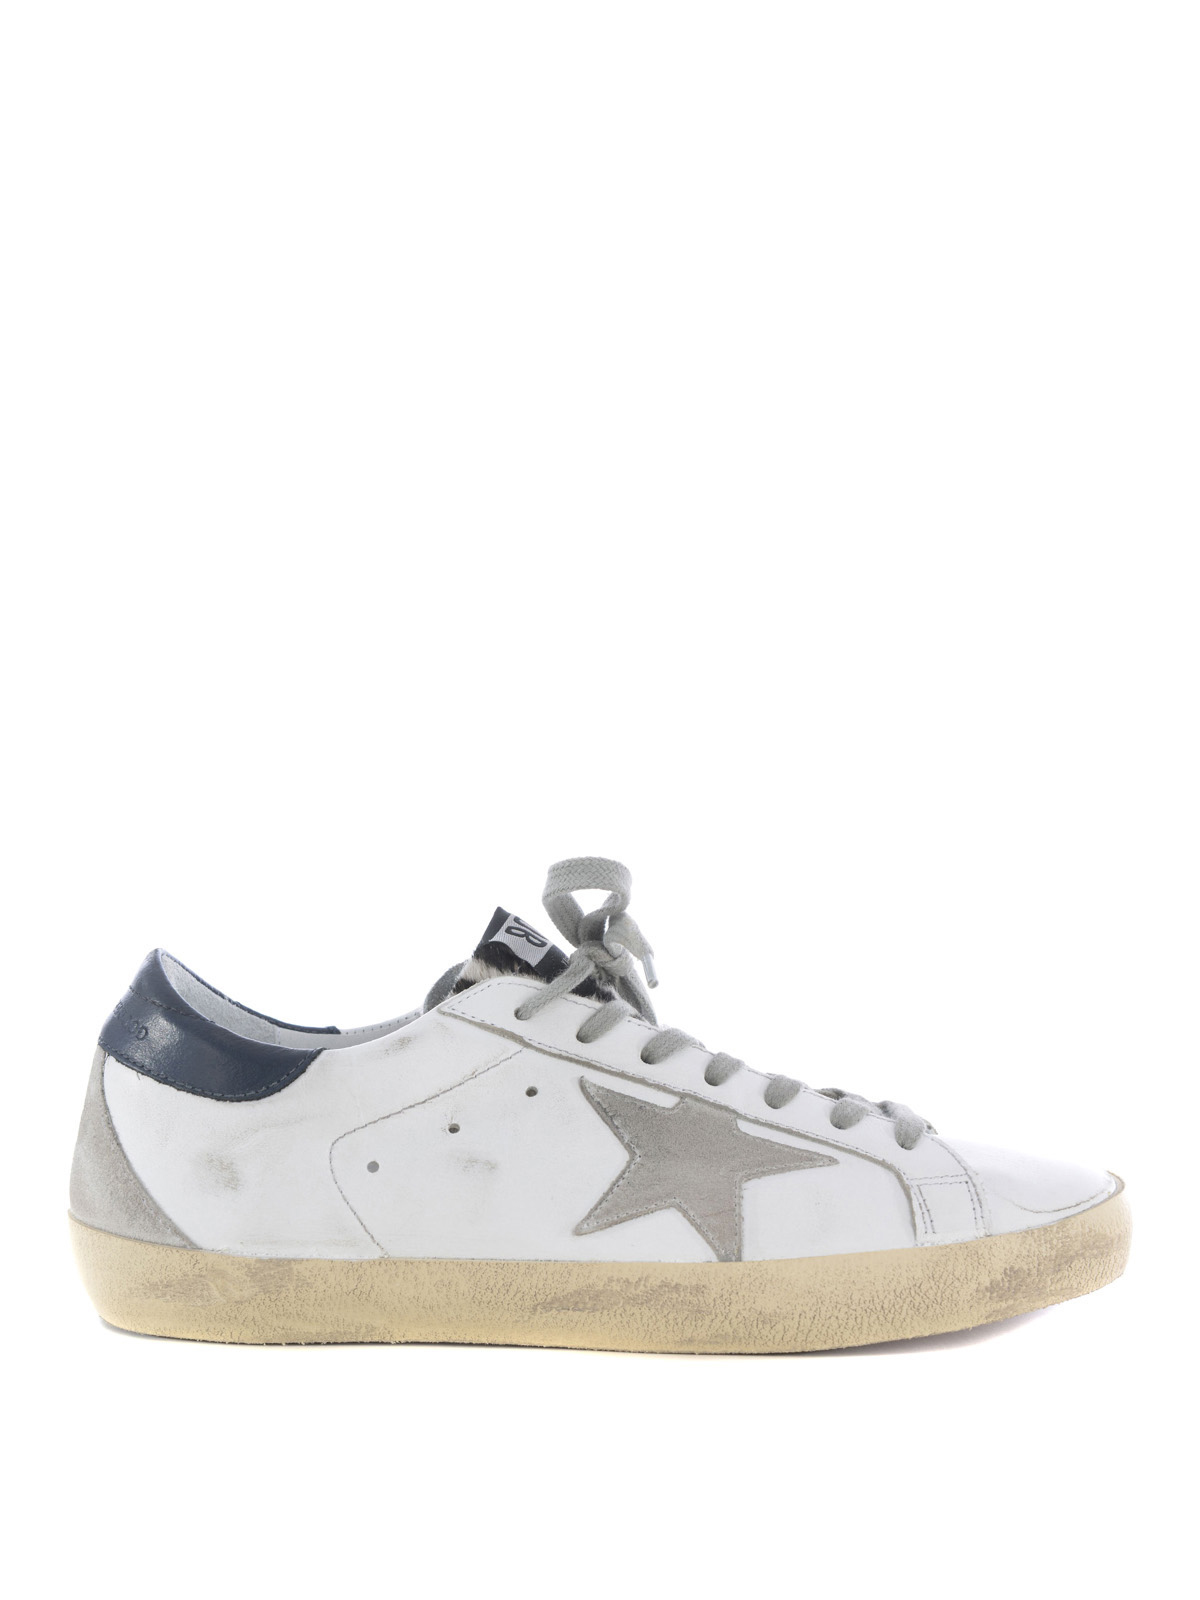 superstar calf hair tongue sneakers by golden goose trainers shop online at. Black Bedroom Furniture Sets. Home Design Ideas